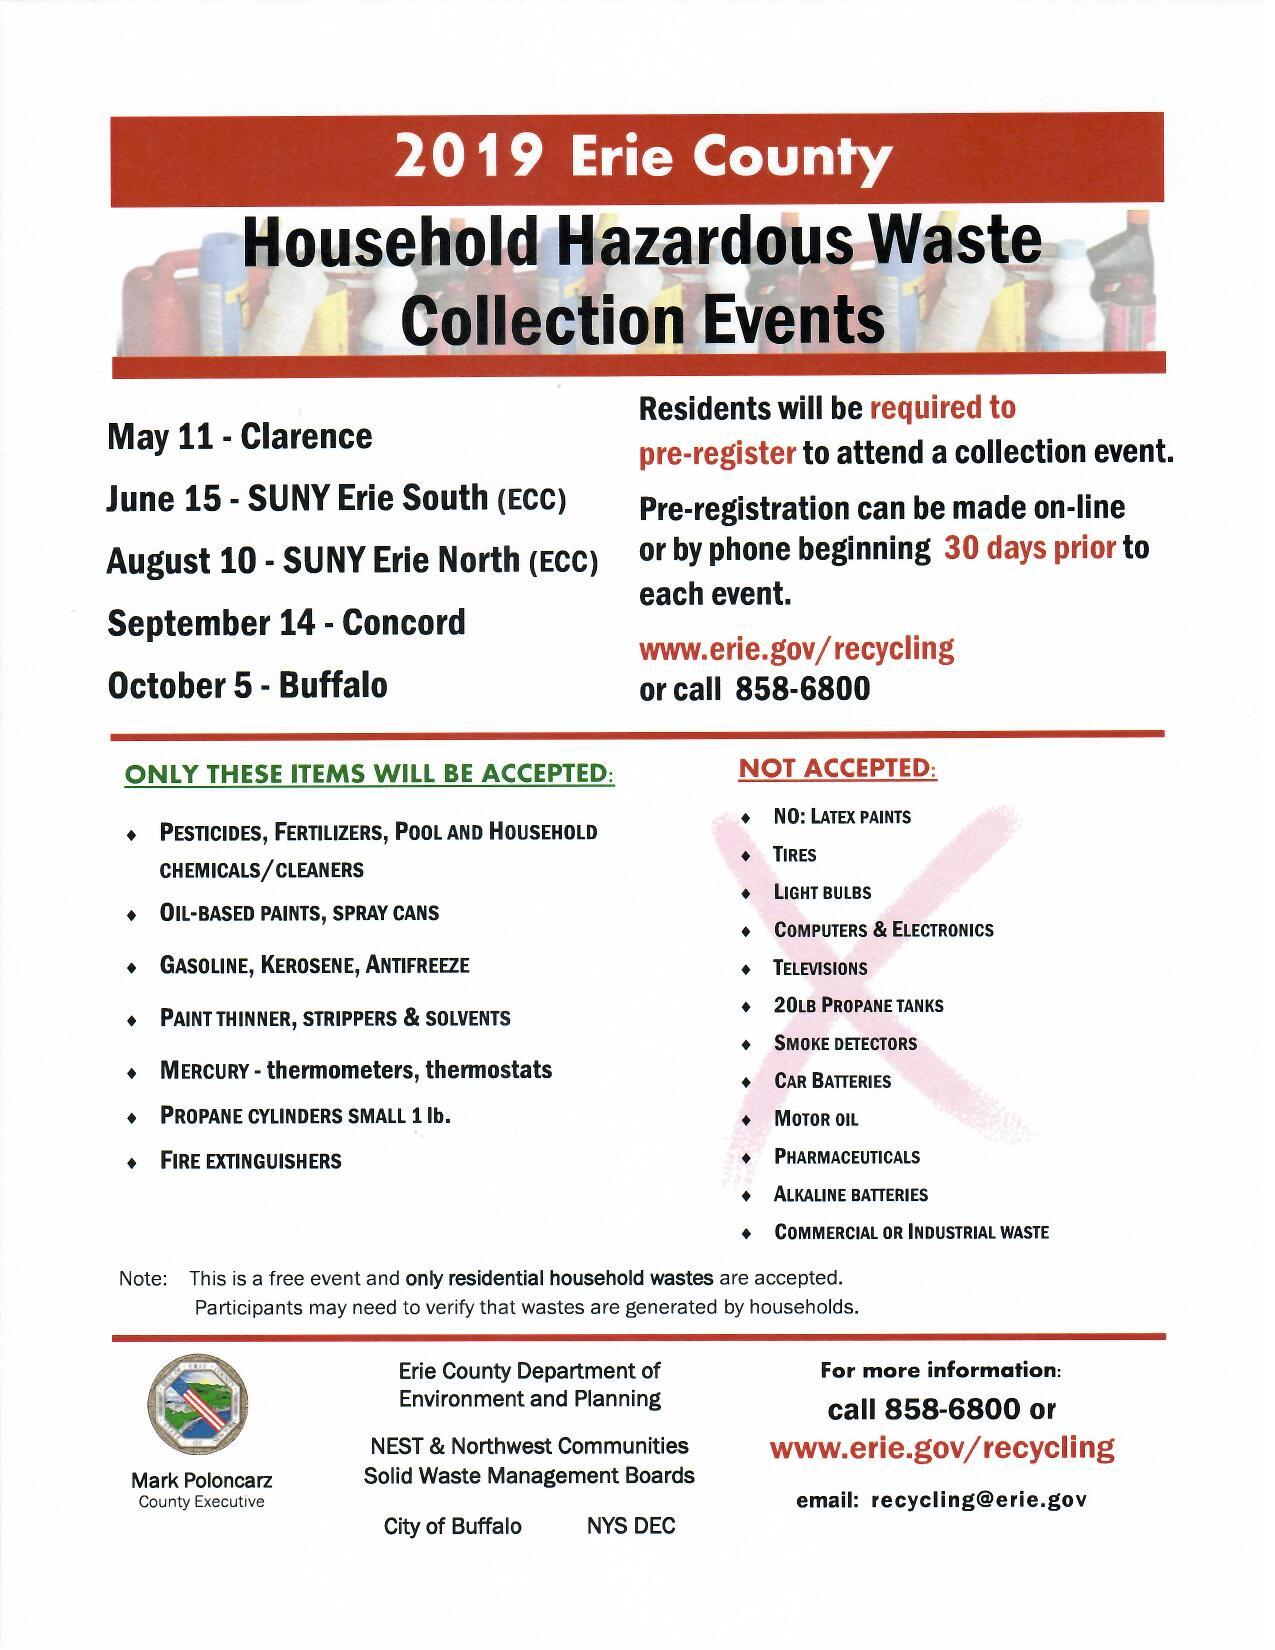 2019 Hazardous Waste EC Drop Off